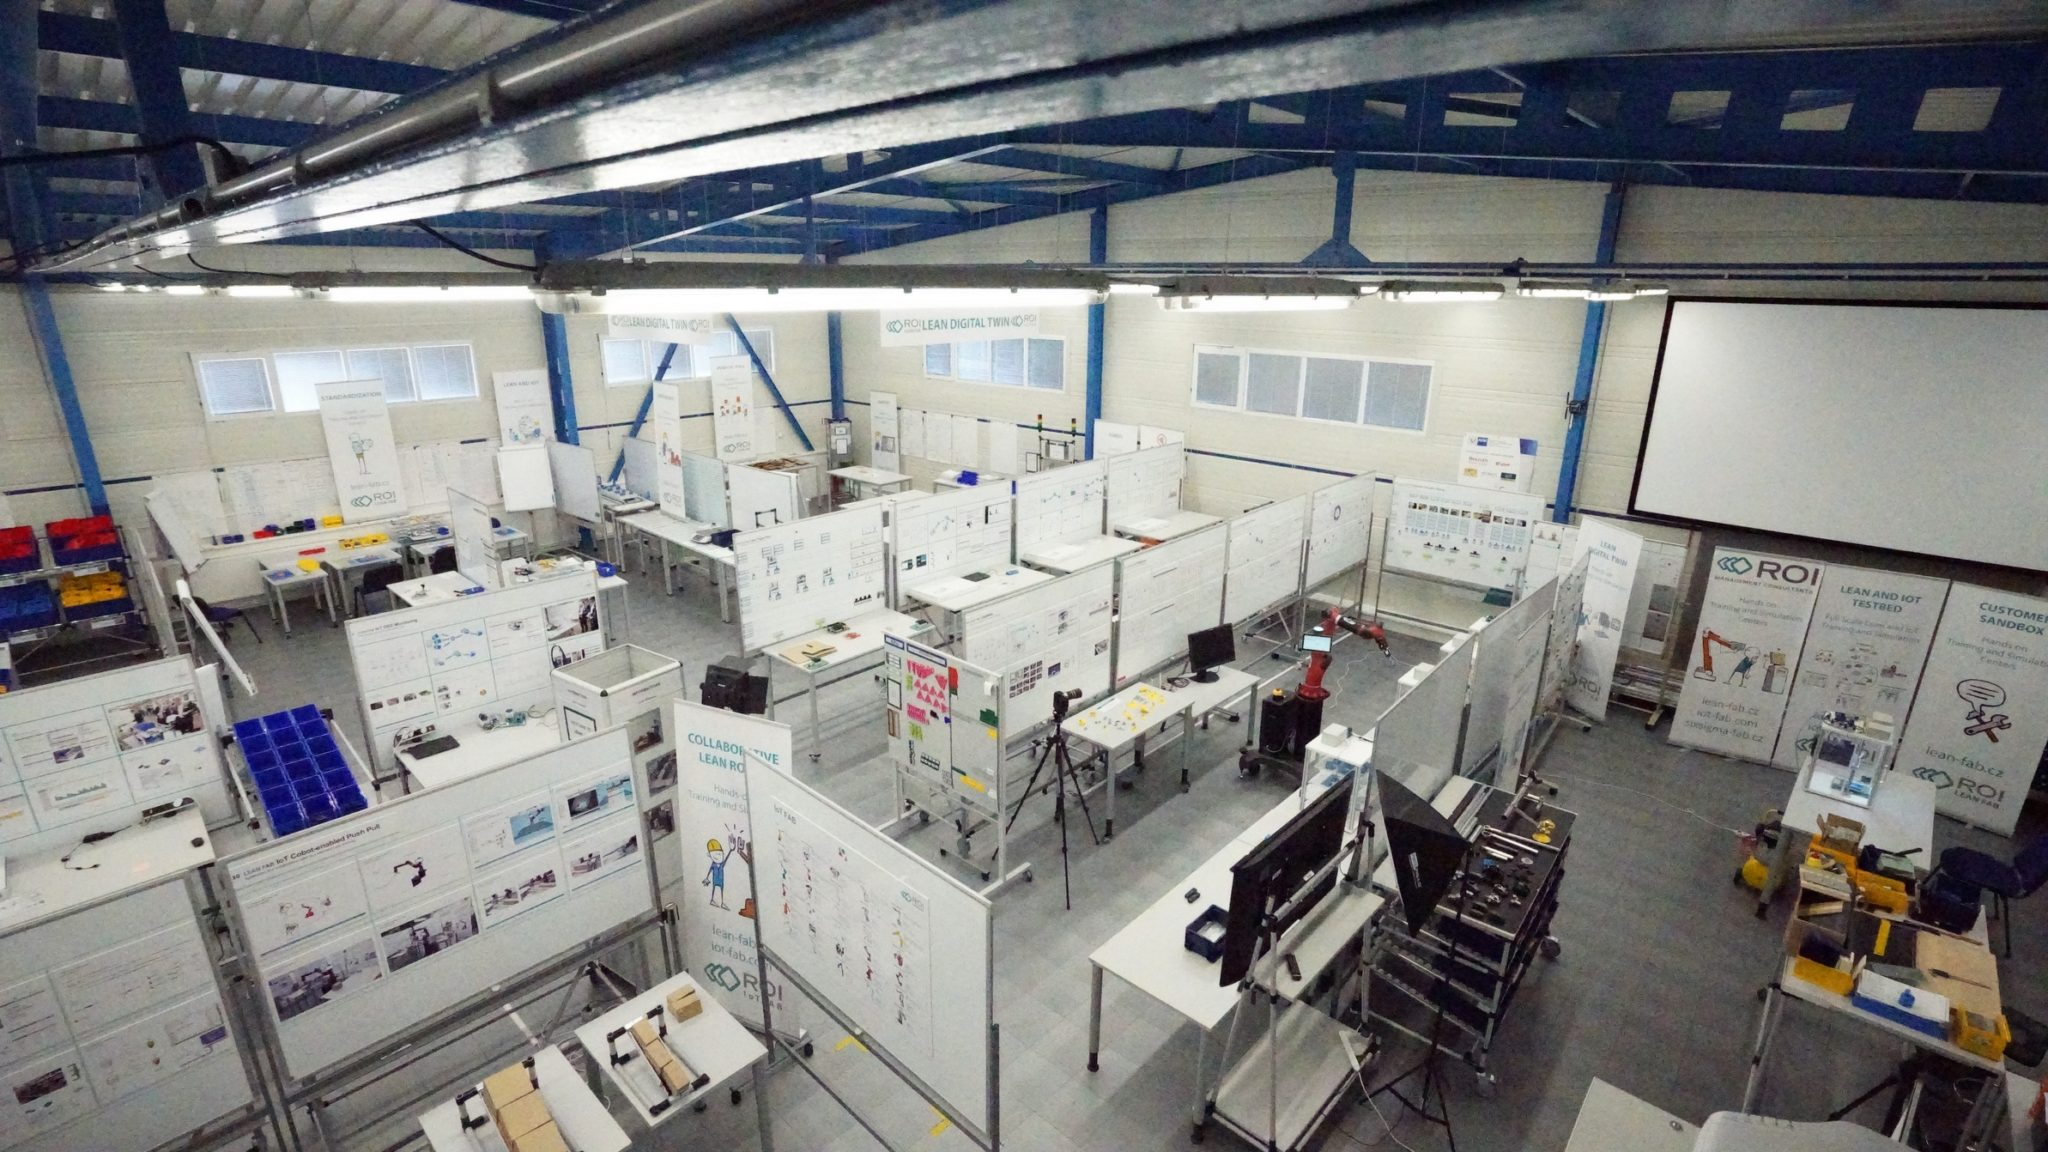 iot lean industry 4.0 training centre